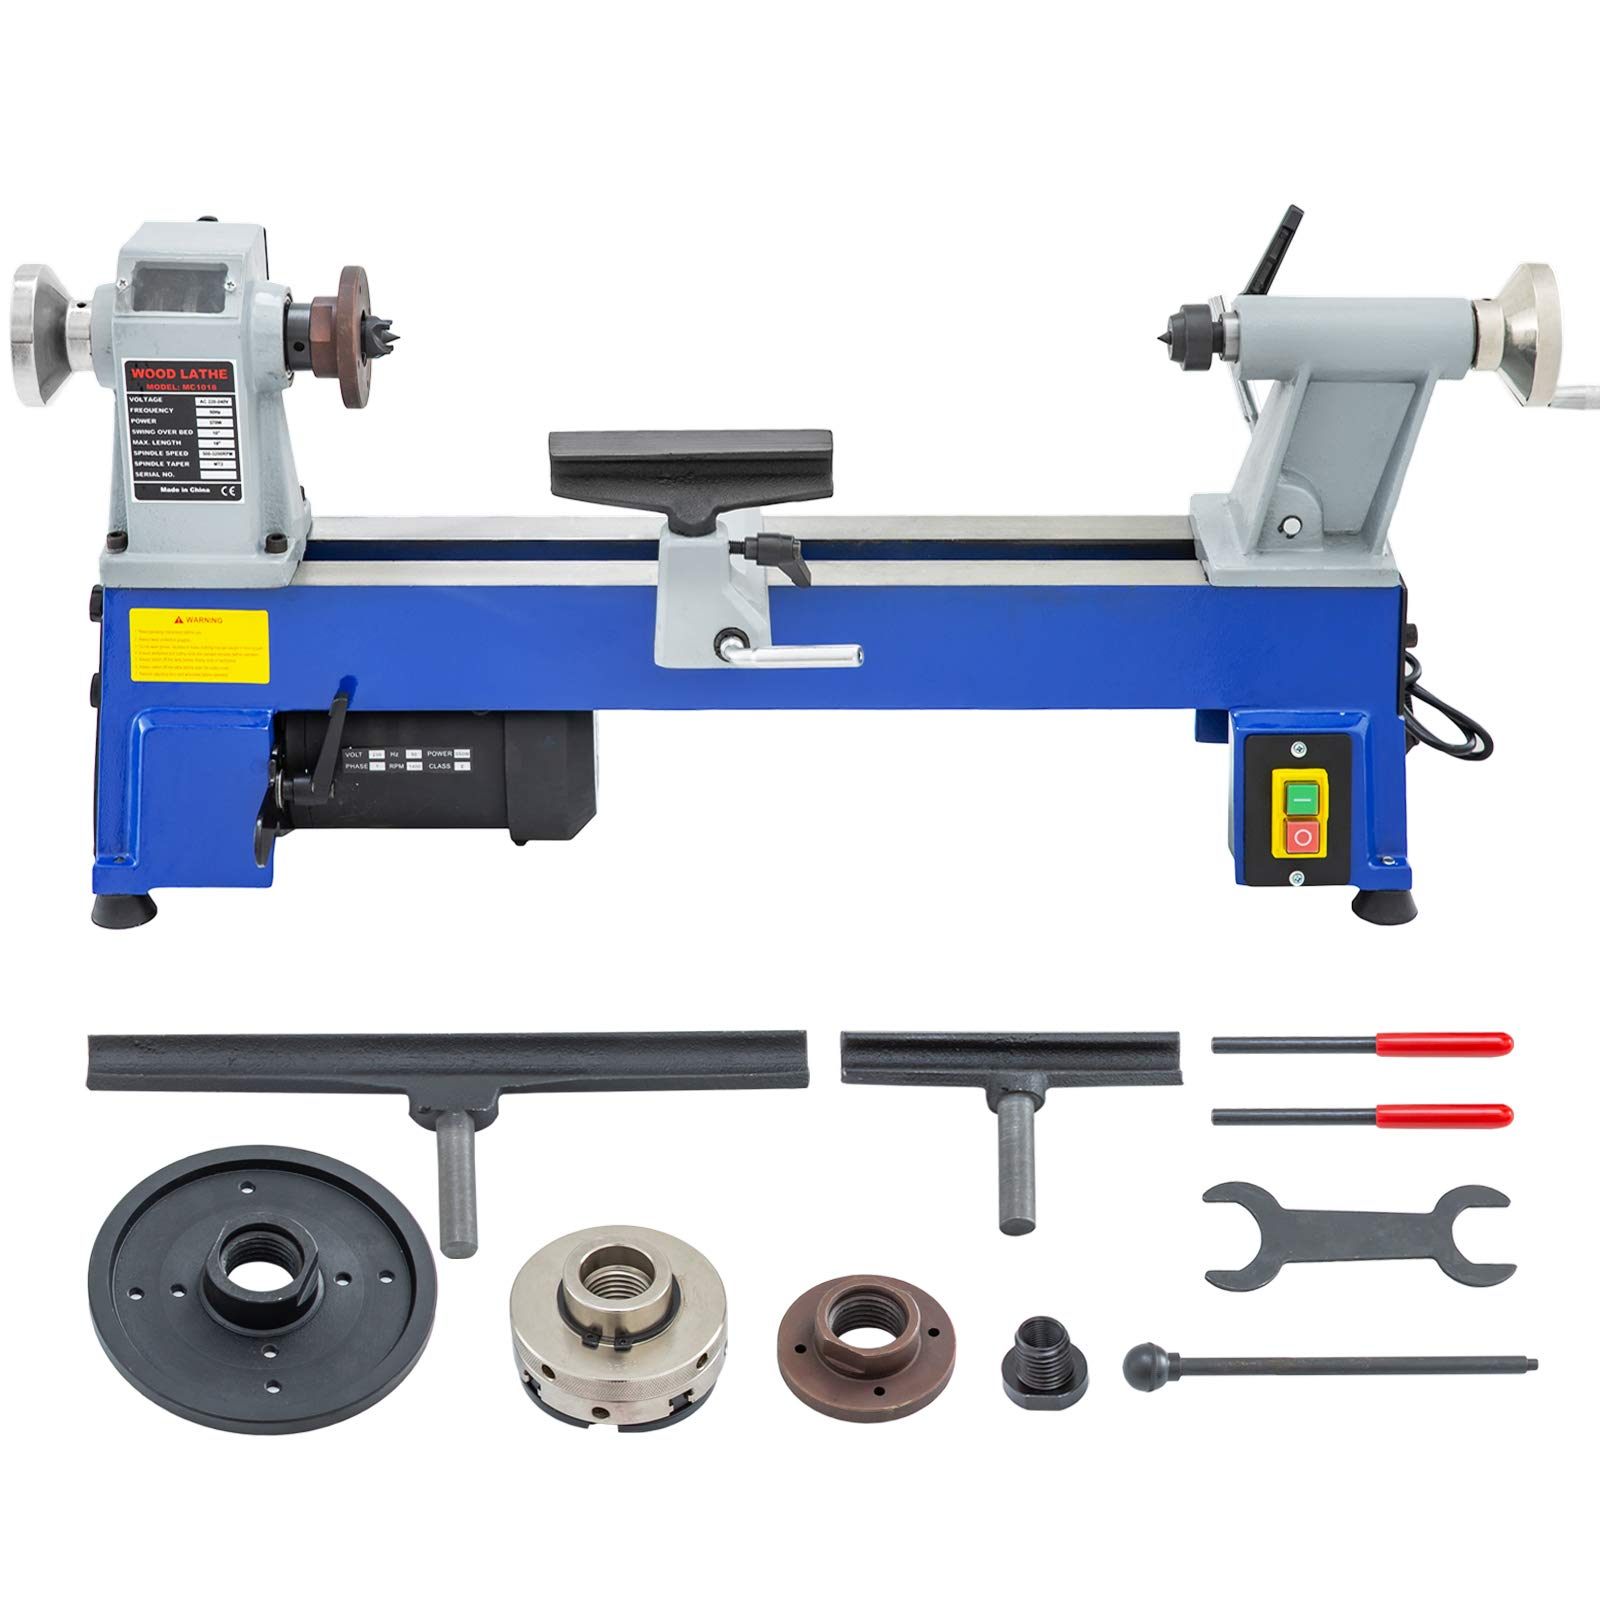 Mophorn 10 x 18 Inch Variable Speed Benchtop Mini Wood Lathe & Variable Speed 500-3200RPM & Rubber Feet (10 x 18 Inch) by Mophorn